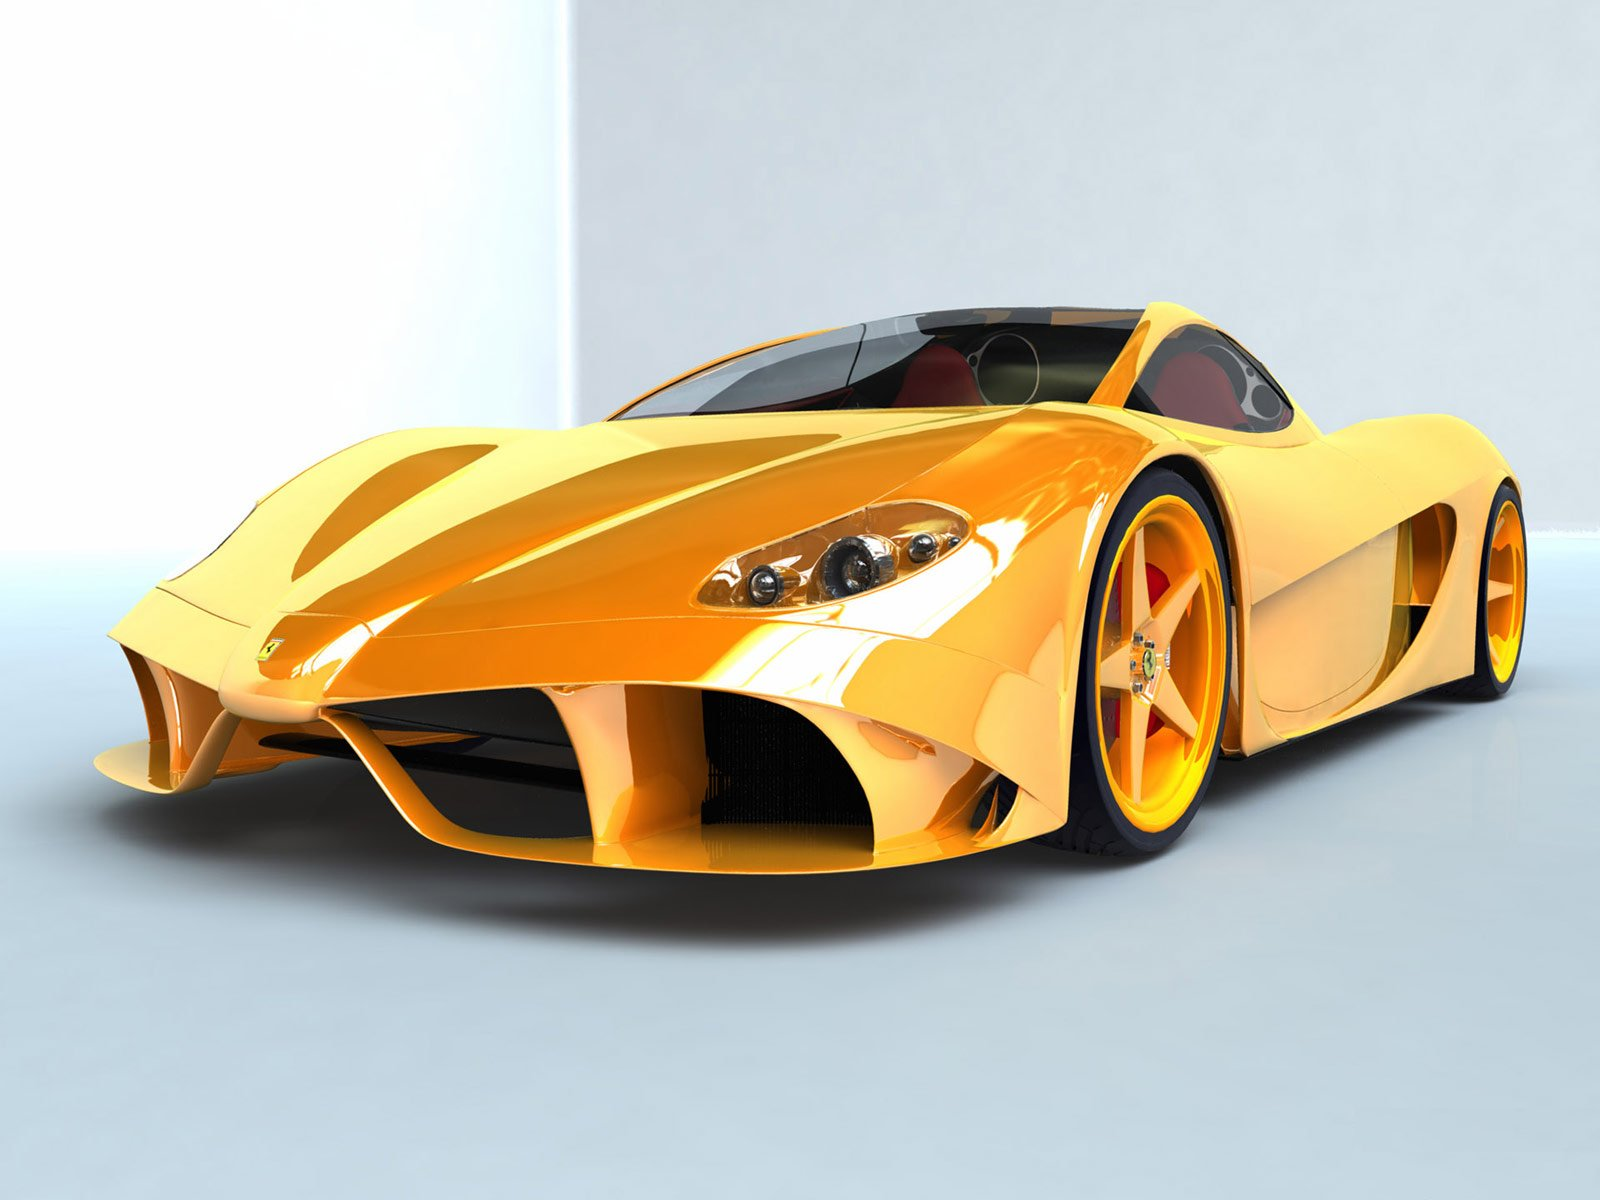 New cool cars wallpapers 1600x1200